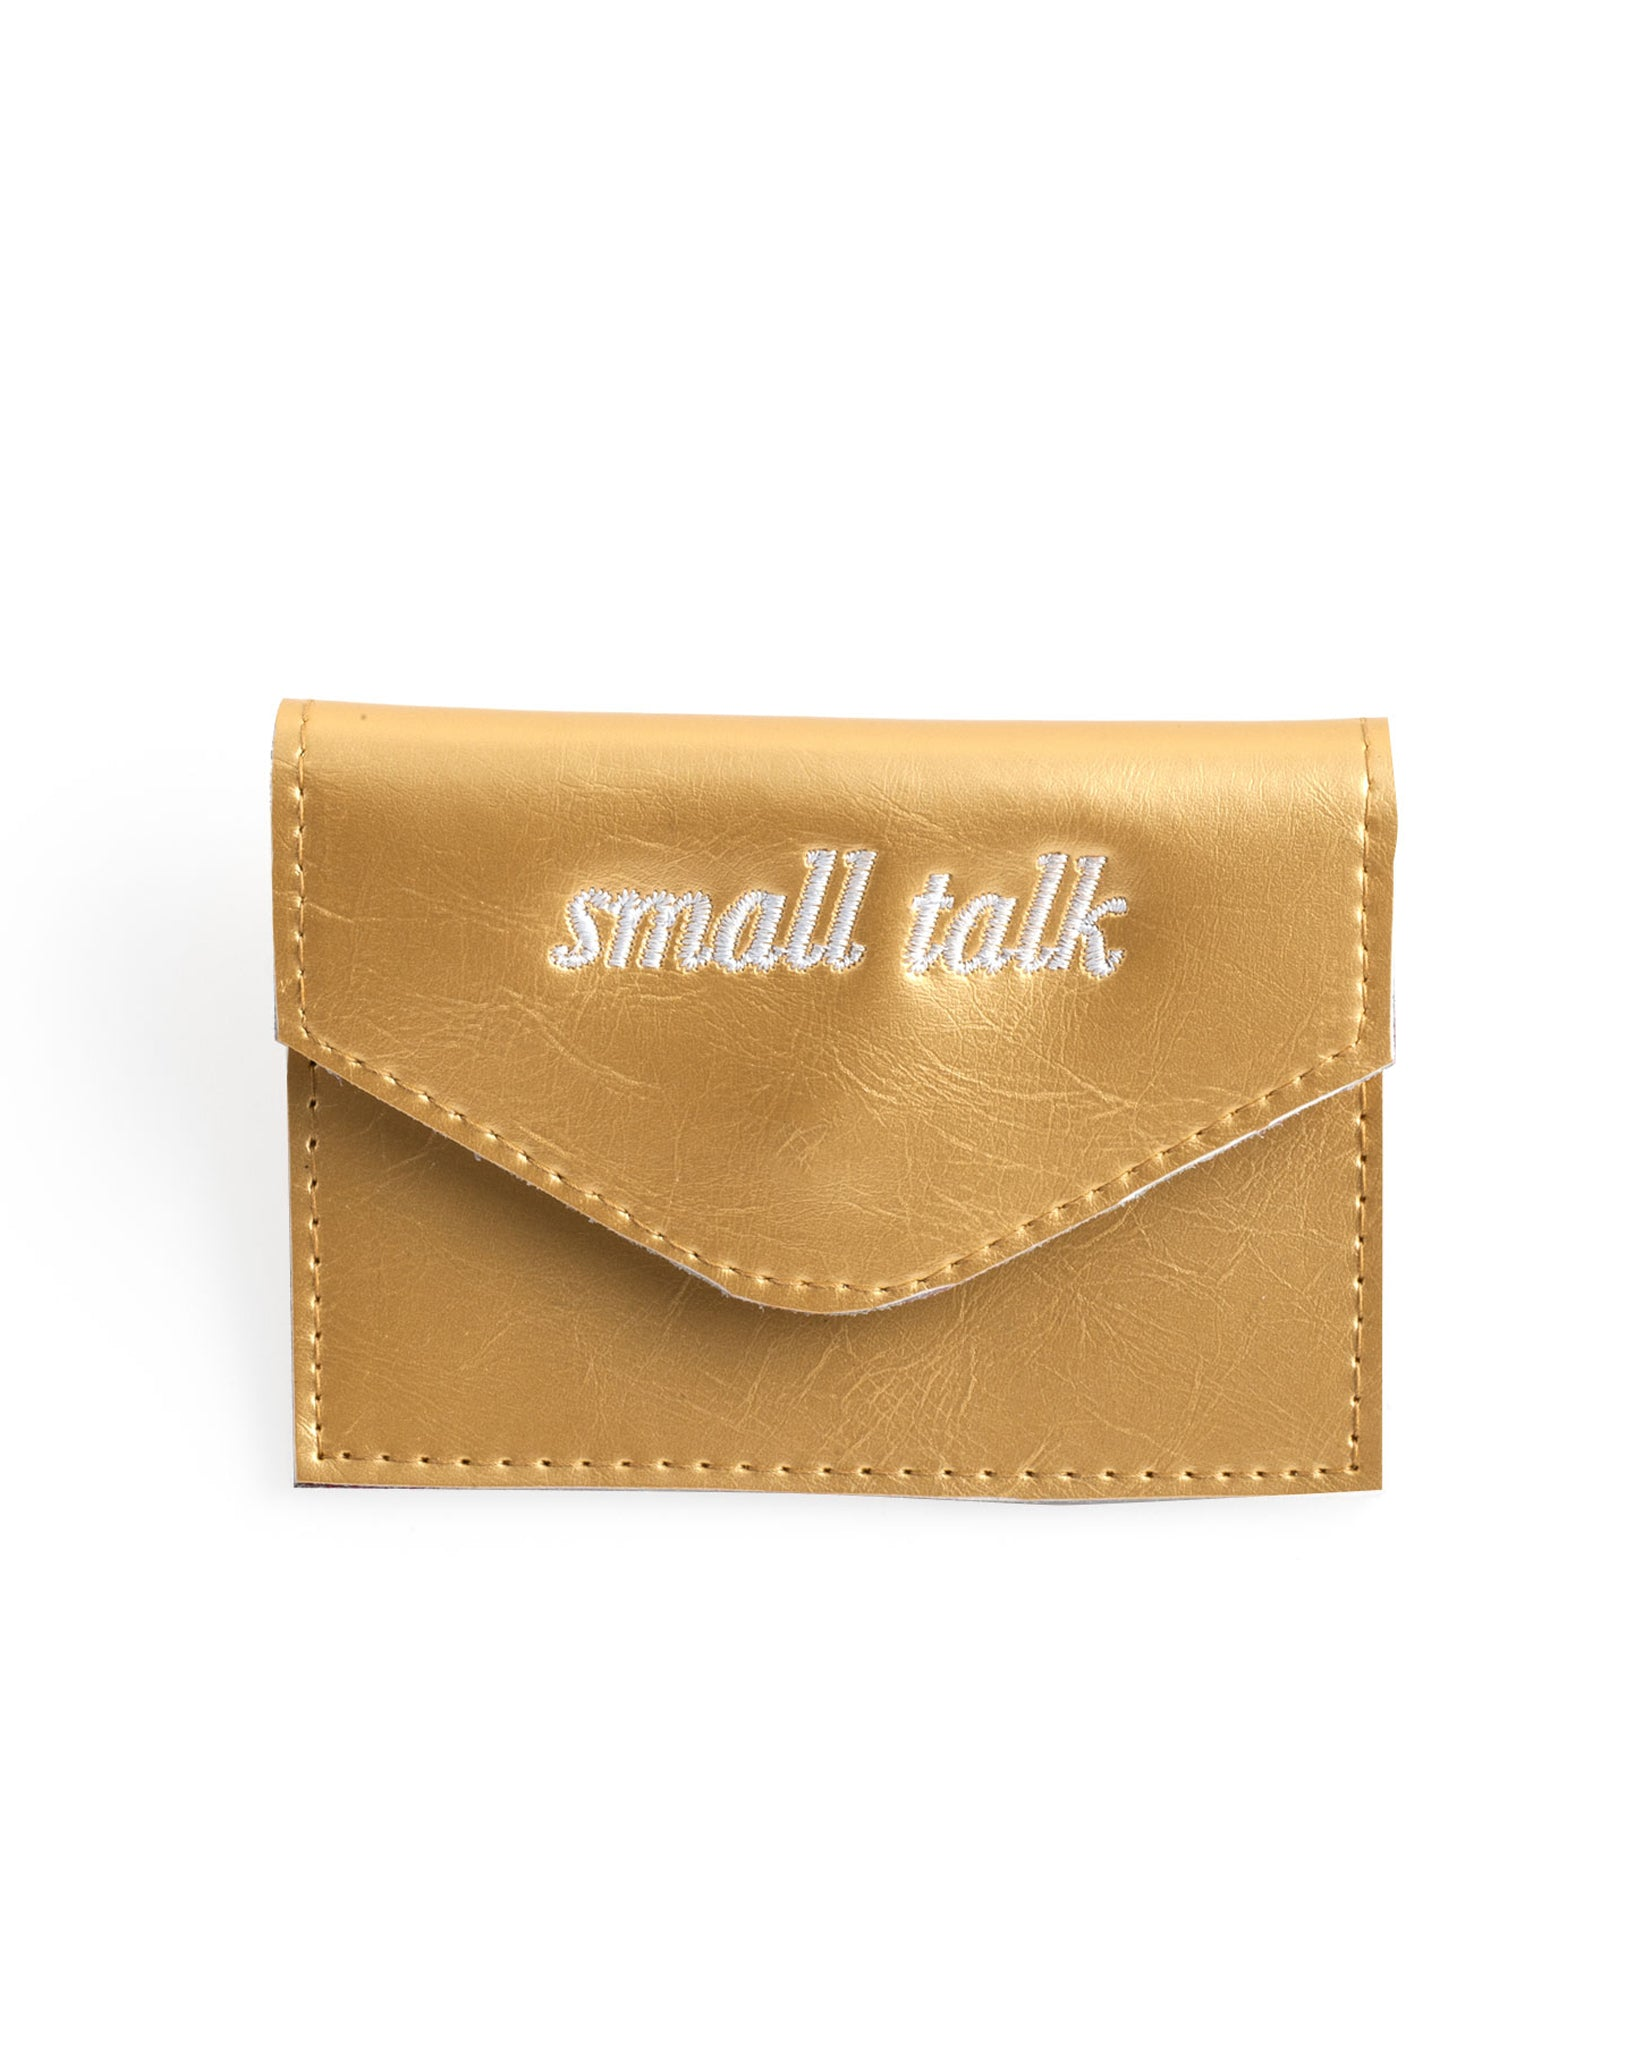 Small talk gold business card holder the shopping bag small talk gold business card holder colourmoves